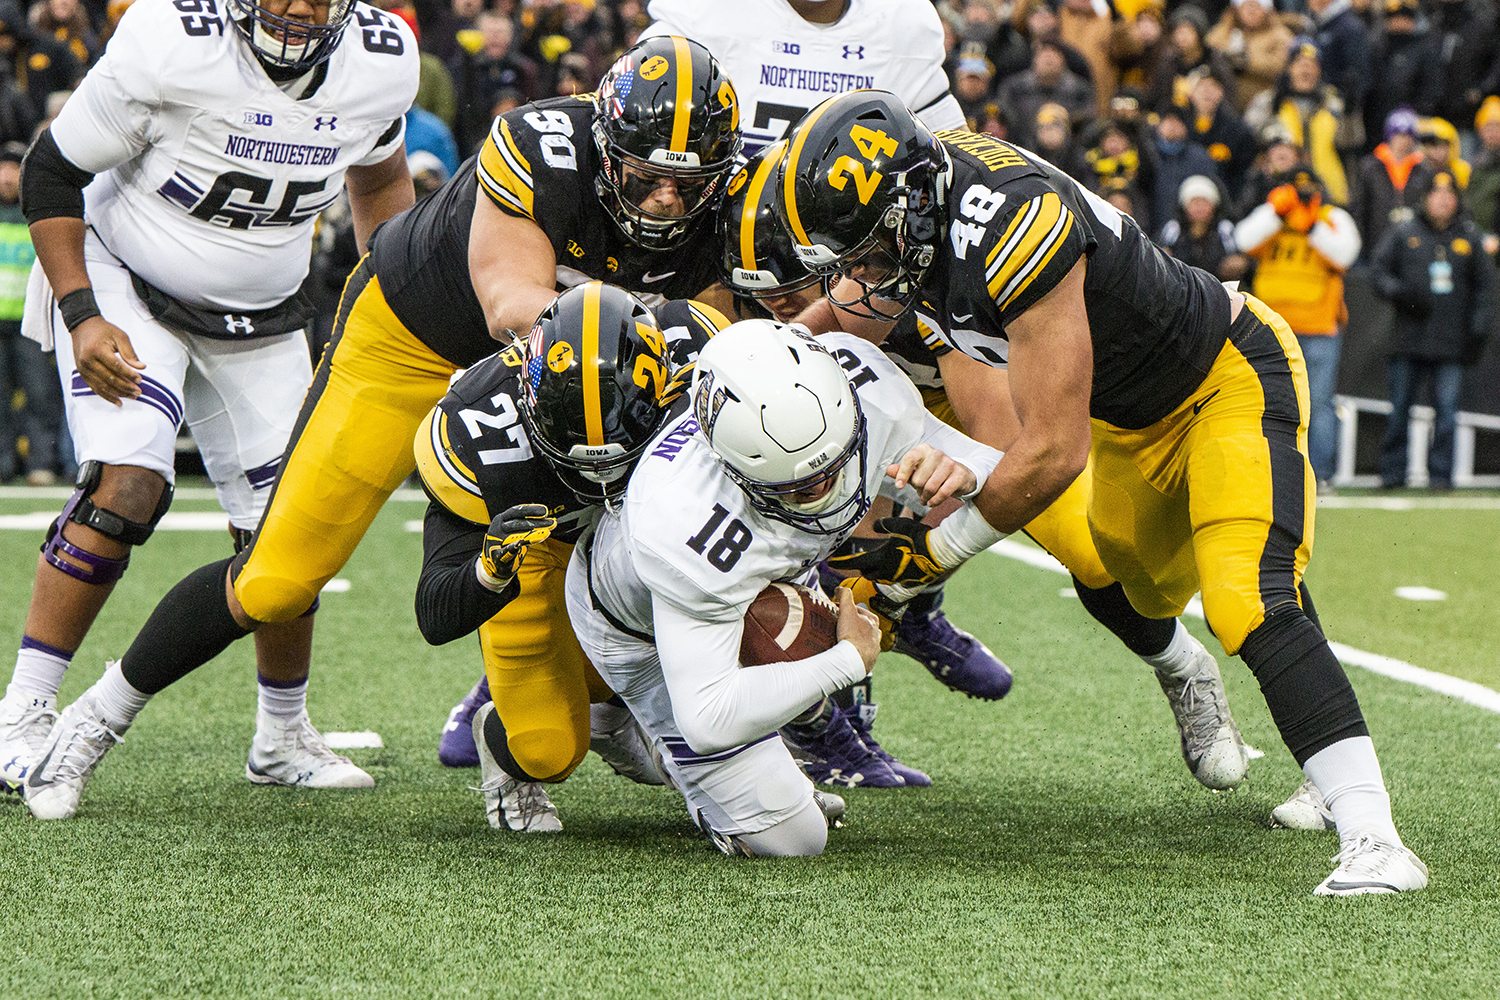 Iowa+defensive+back+Amani+Hooker+%2827%29%2C+defensive+end+Sam+Brincks+%2890%29%2C+and+linebacker+Jack+Hockaday+tackle+Northwestern+quarterback+Clayton+Thorson+during+the+Iowa%2FNorthwestern+game+at+Kinnick+Stadium+on+Saturday%2C+November+10%2C+2018.+The+Wildcats+defeated+the+Hawkeyes+14-10.+%28Katina+Zentz%2FThe+Daily+Iowan%29